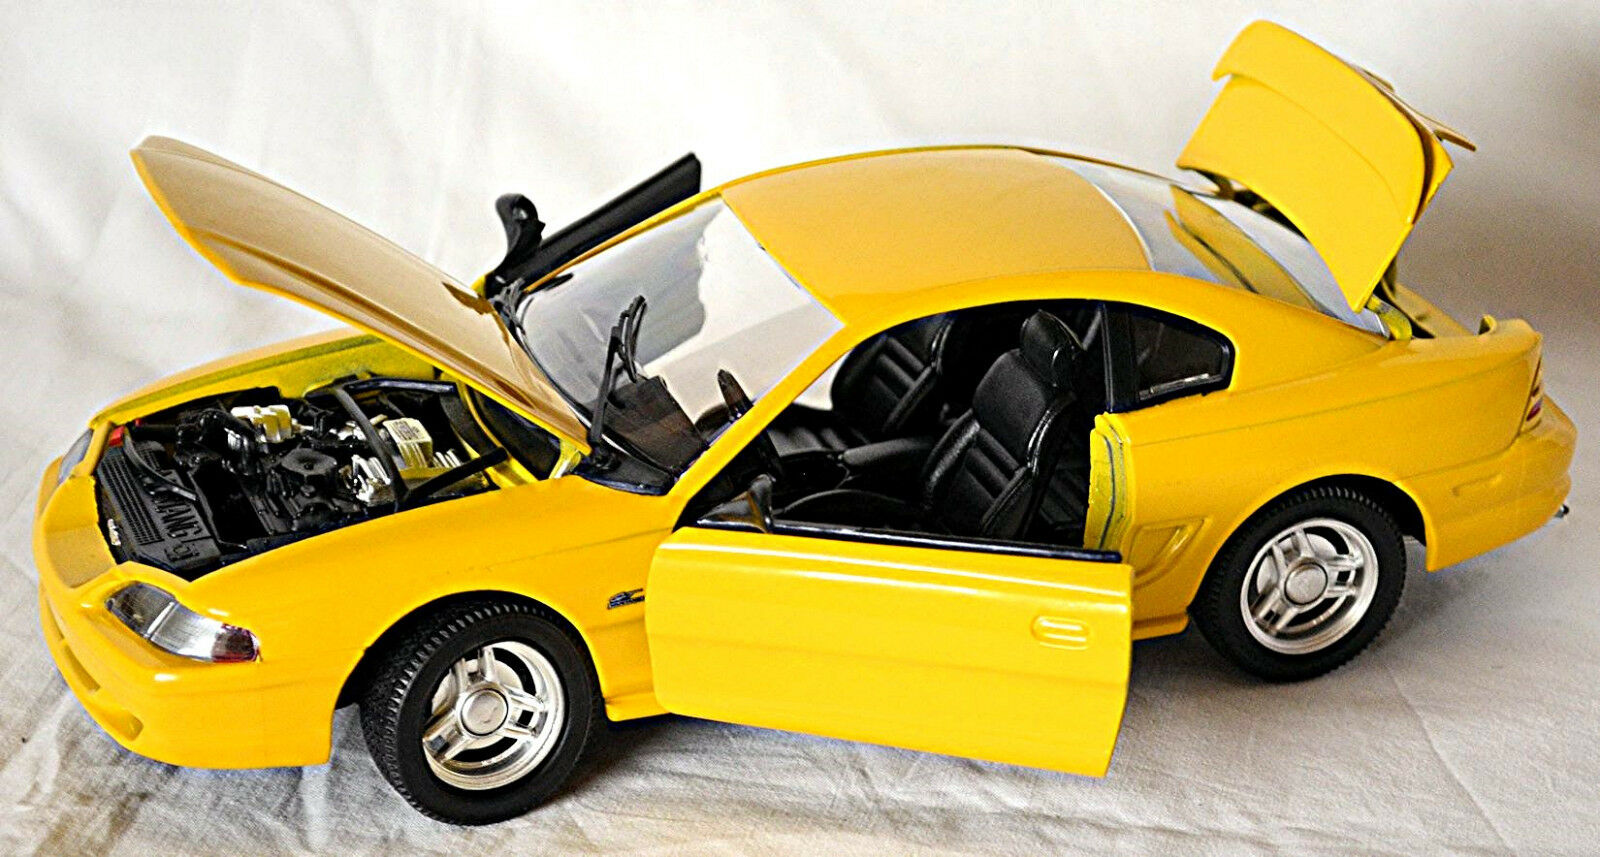 Ford Mustang IV GT Coupe 1994-98 yellow yellow 1 18 Jouef Evolution